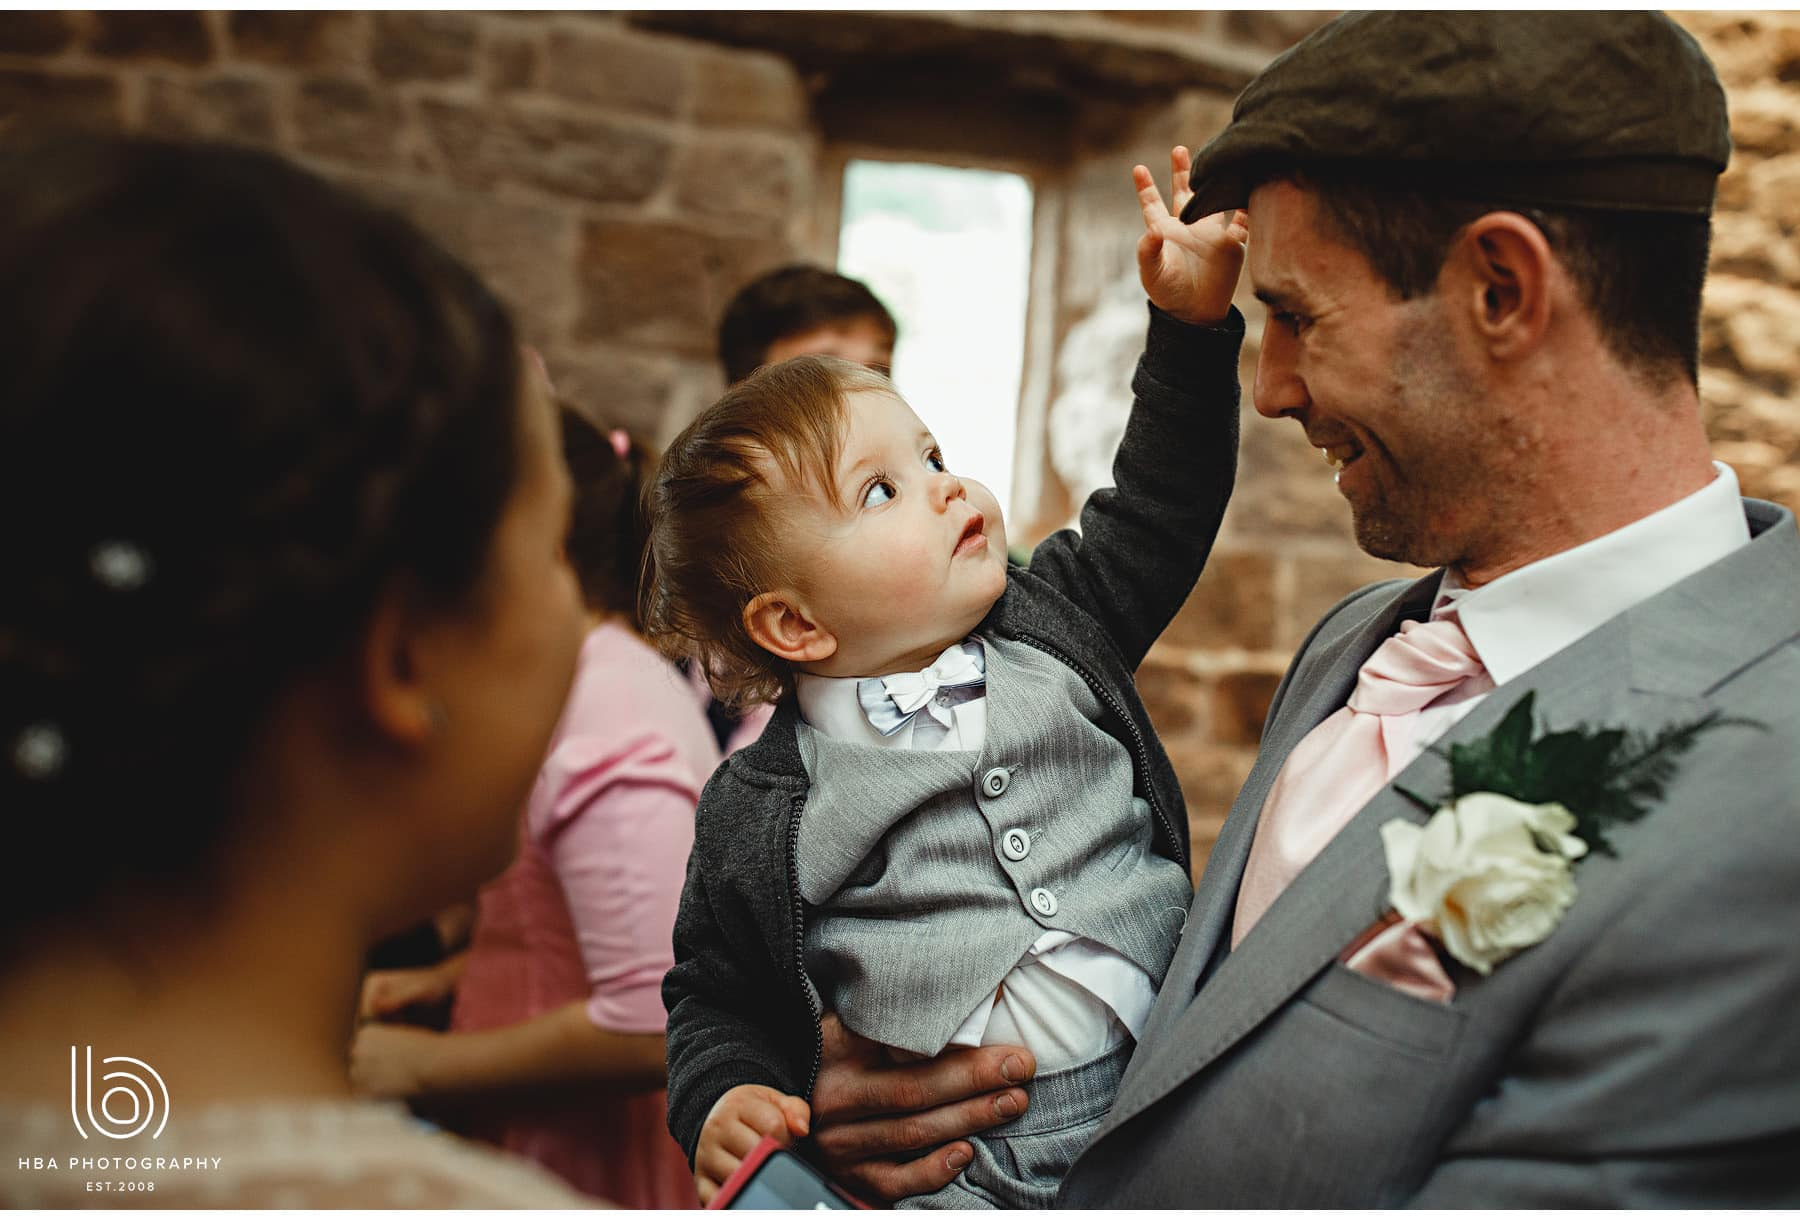 a child at the wedding